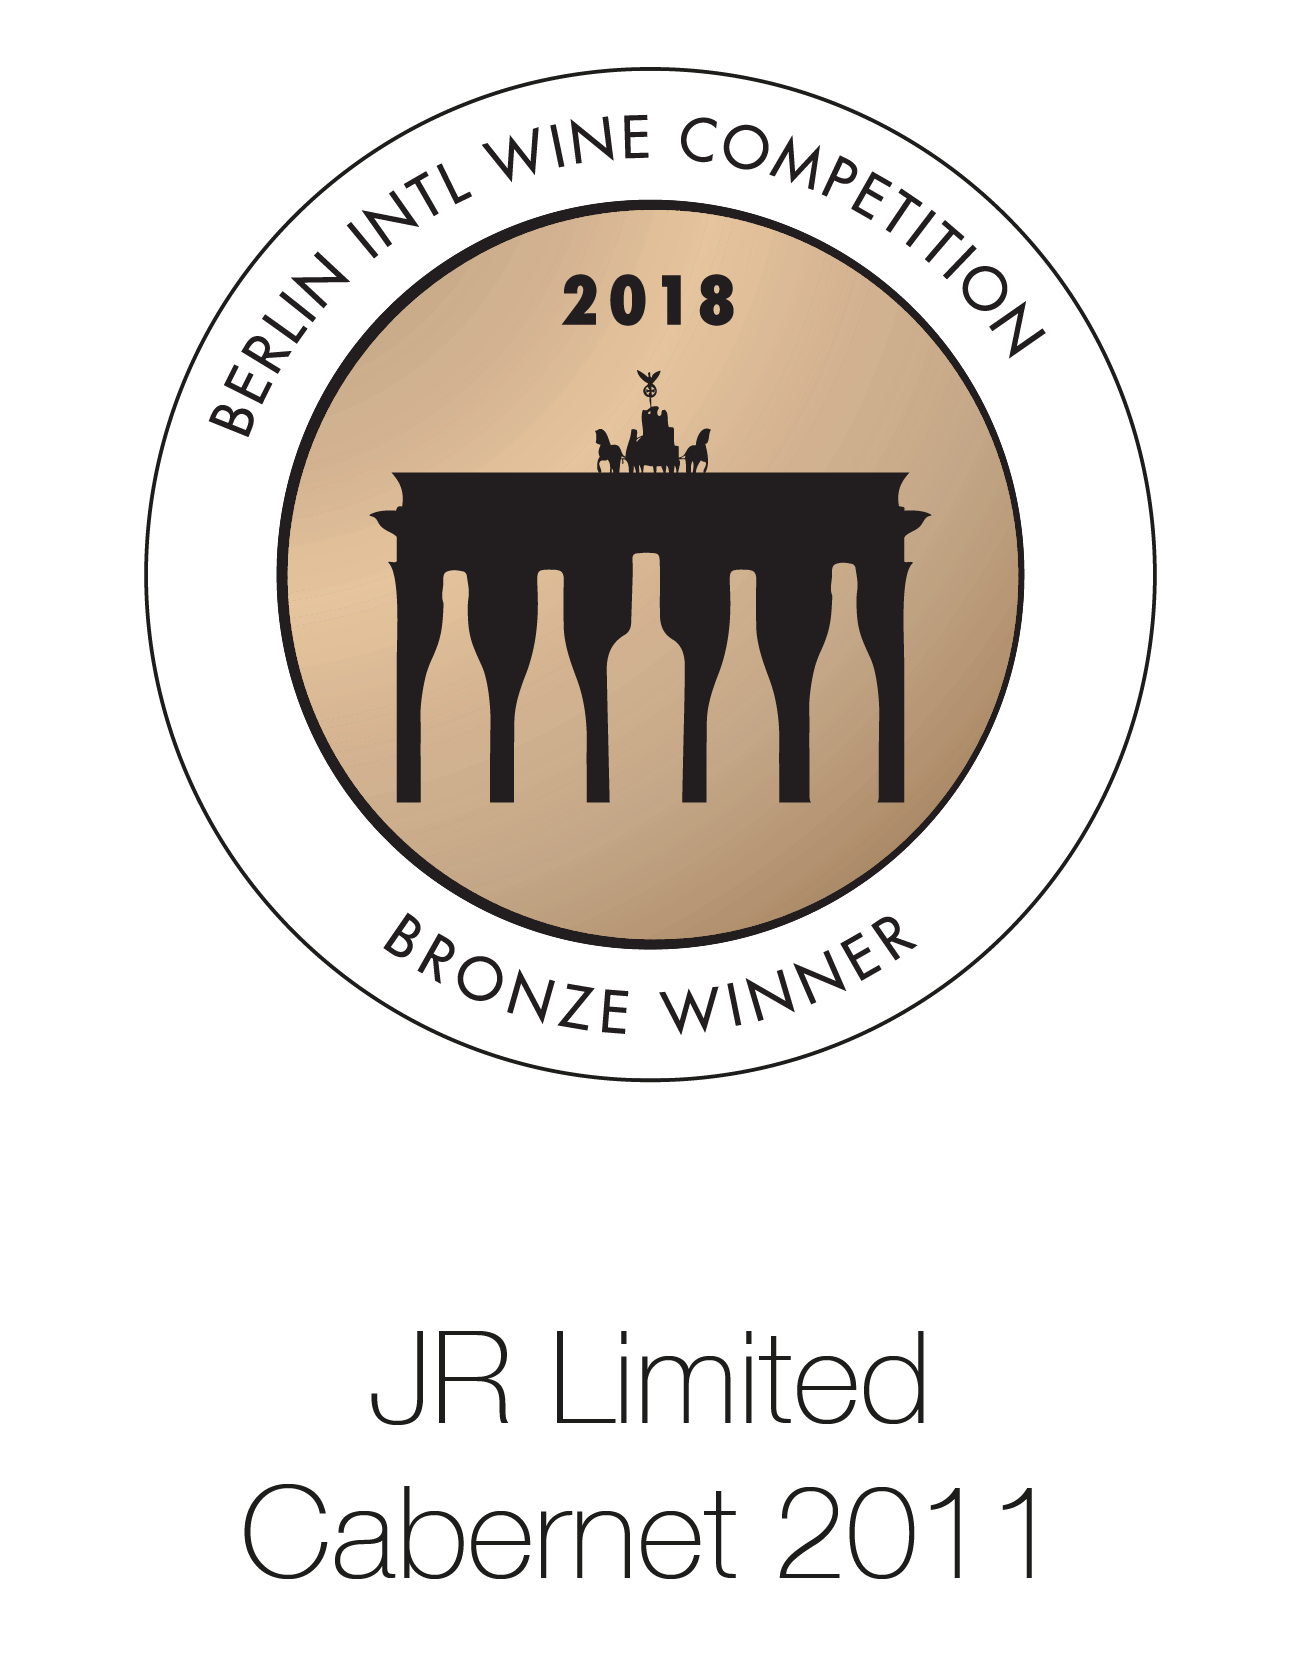 JR Limited Edition - Cabernet Sauvignon 2011 - Berlin International Wine Competition 2018